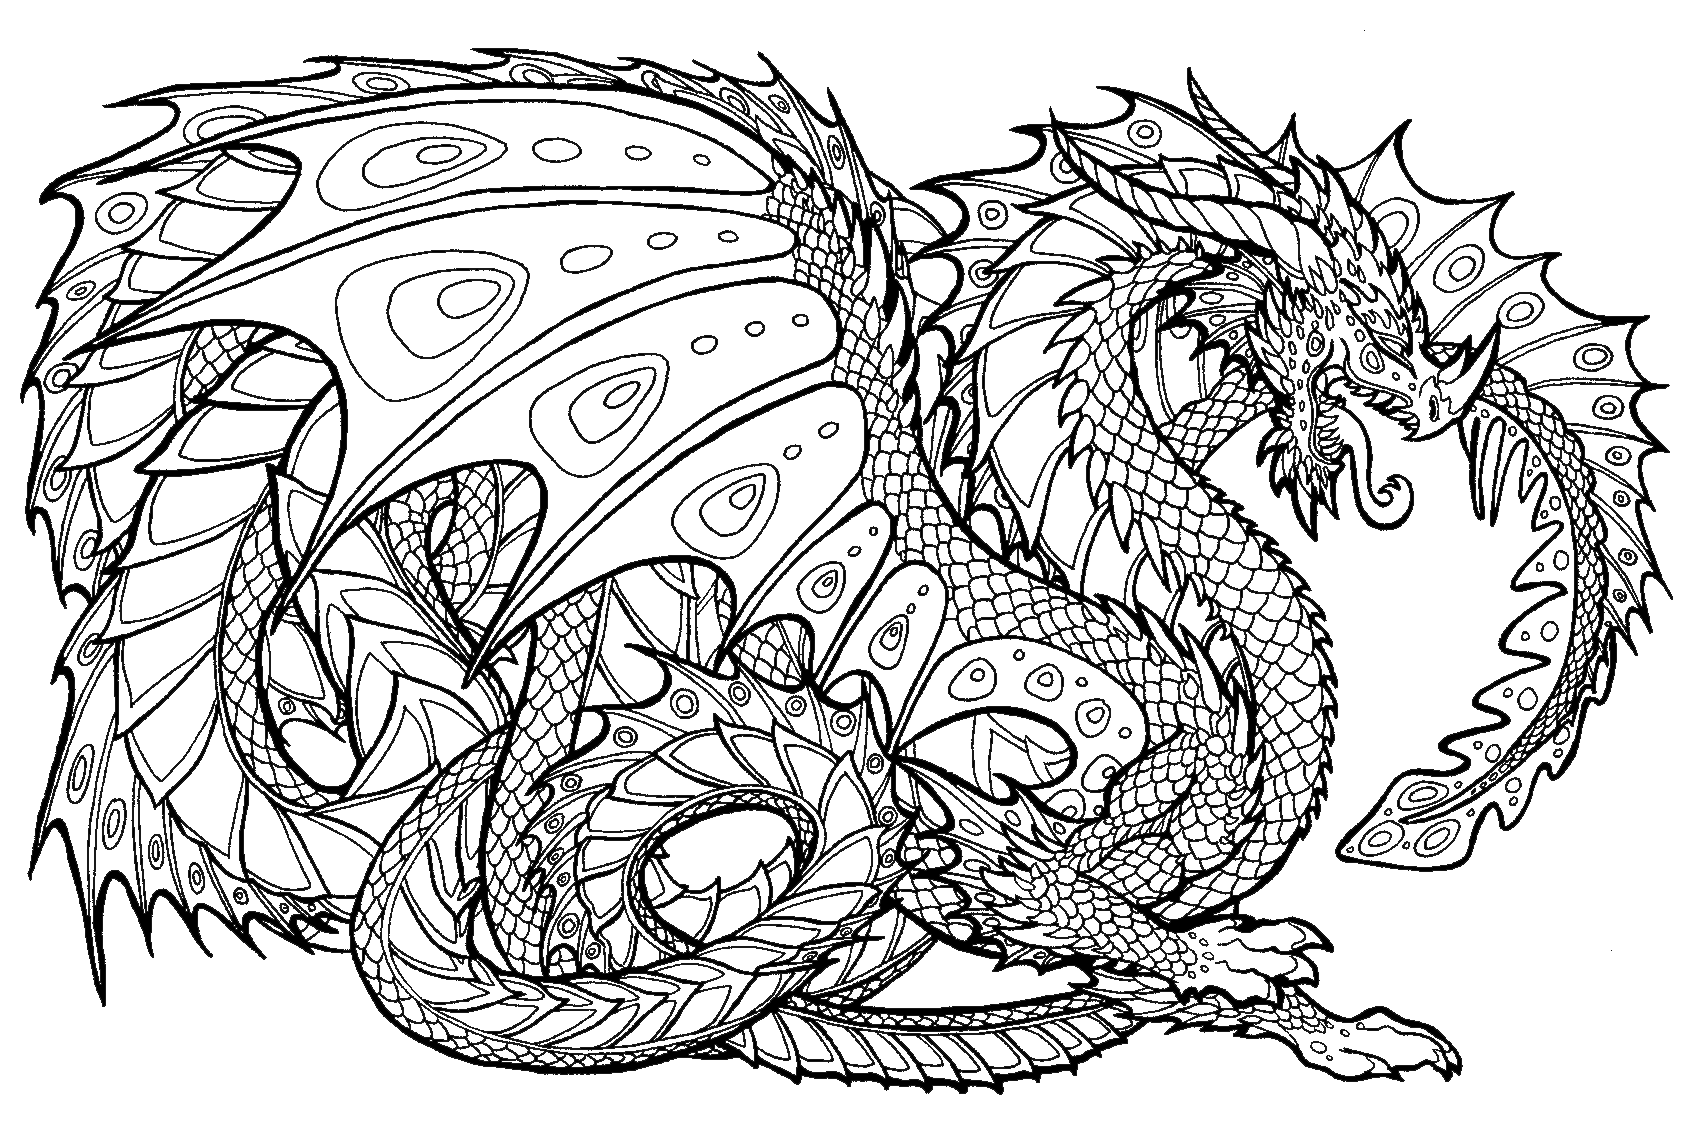 KingpykkT.png (1688×1136) Detailed coloring pages